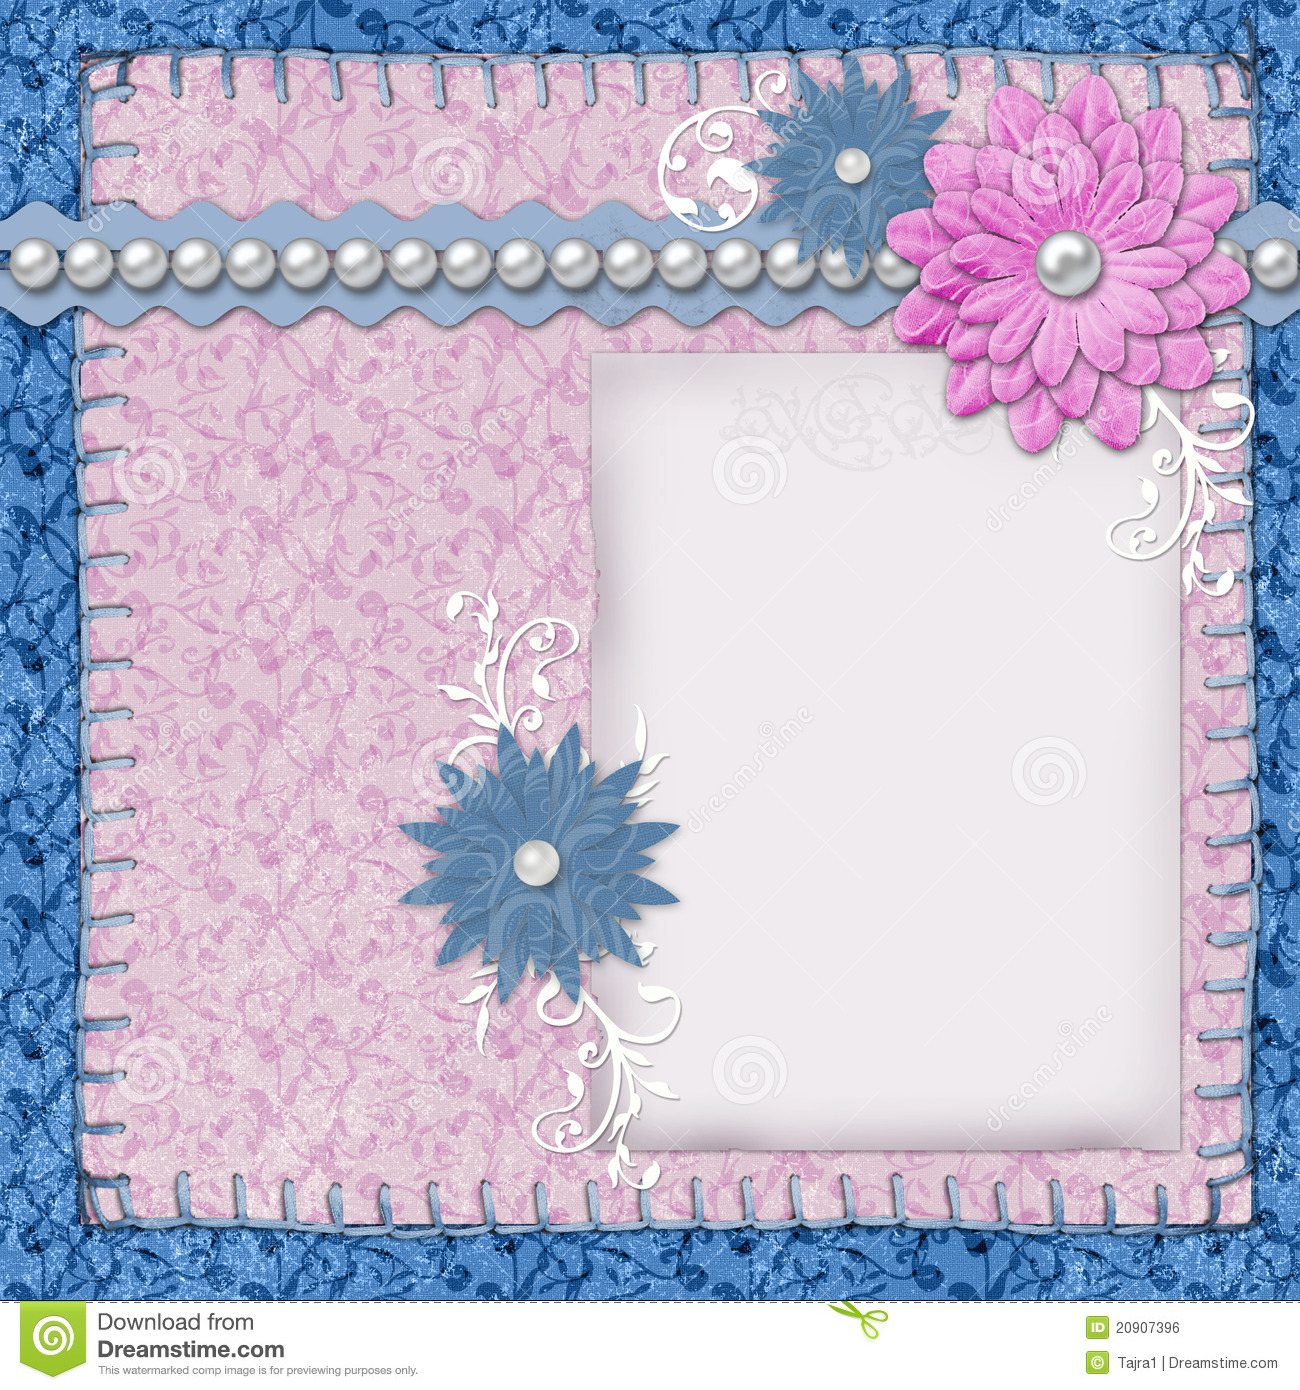 templates for scrapbooking to print - scrapbook printable templates just b cause